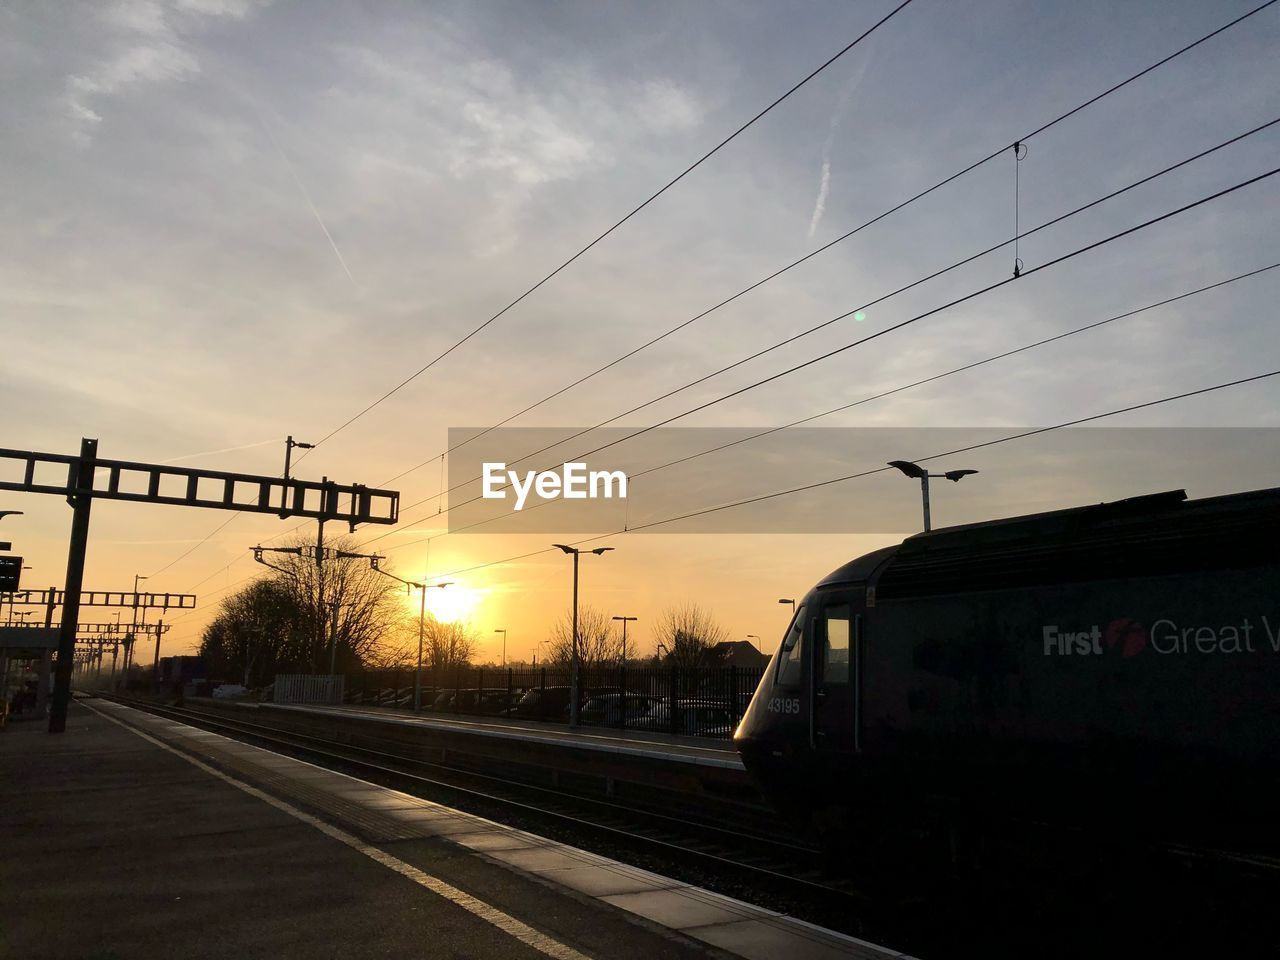 sunset, transportation, sky, rail transportation, railroad track, cable, silhouette, railway, travel, public transportation, no people, train - vehicle, outdoors, architecture, day